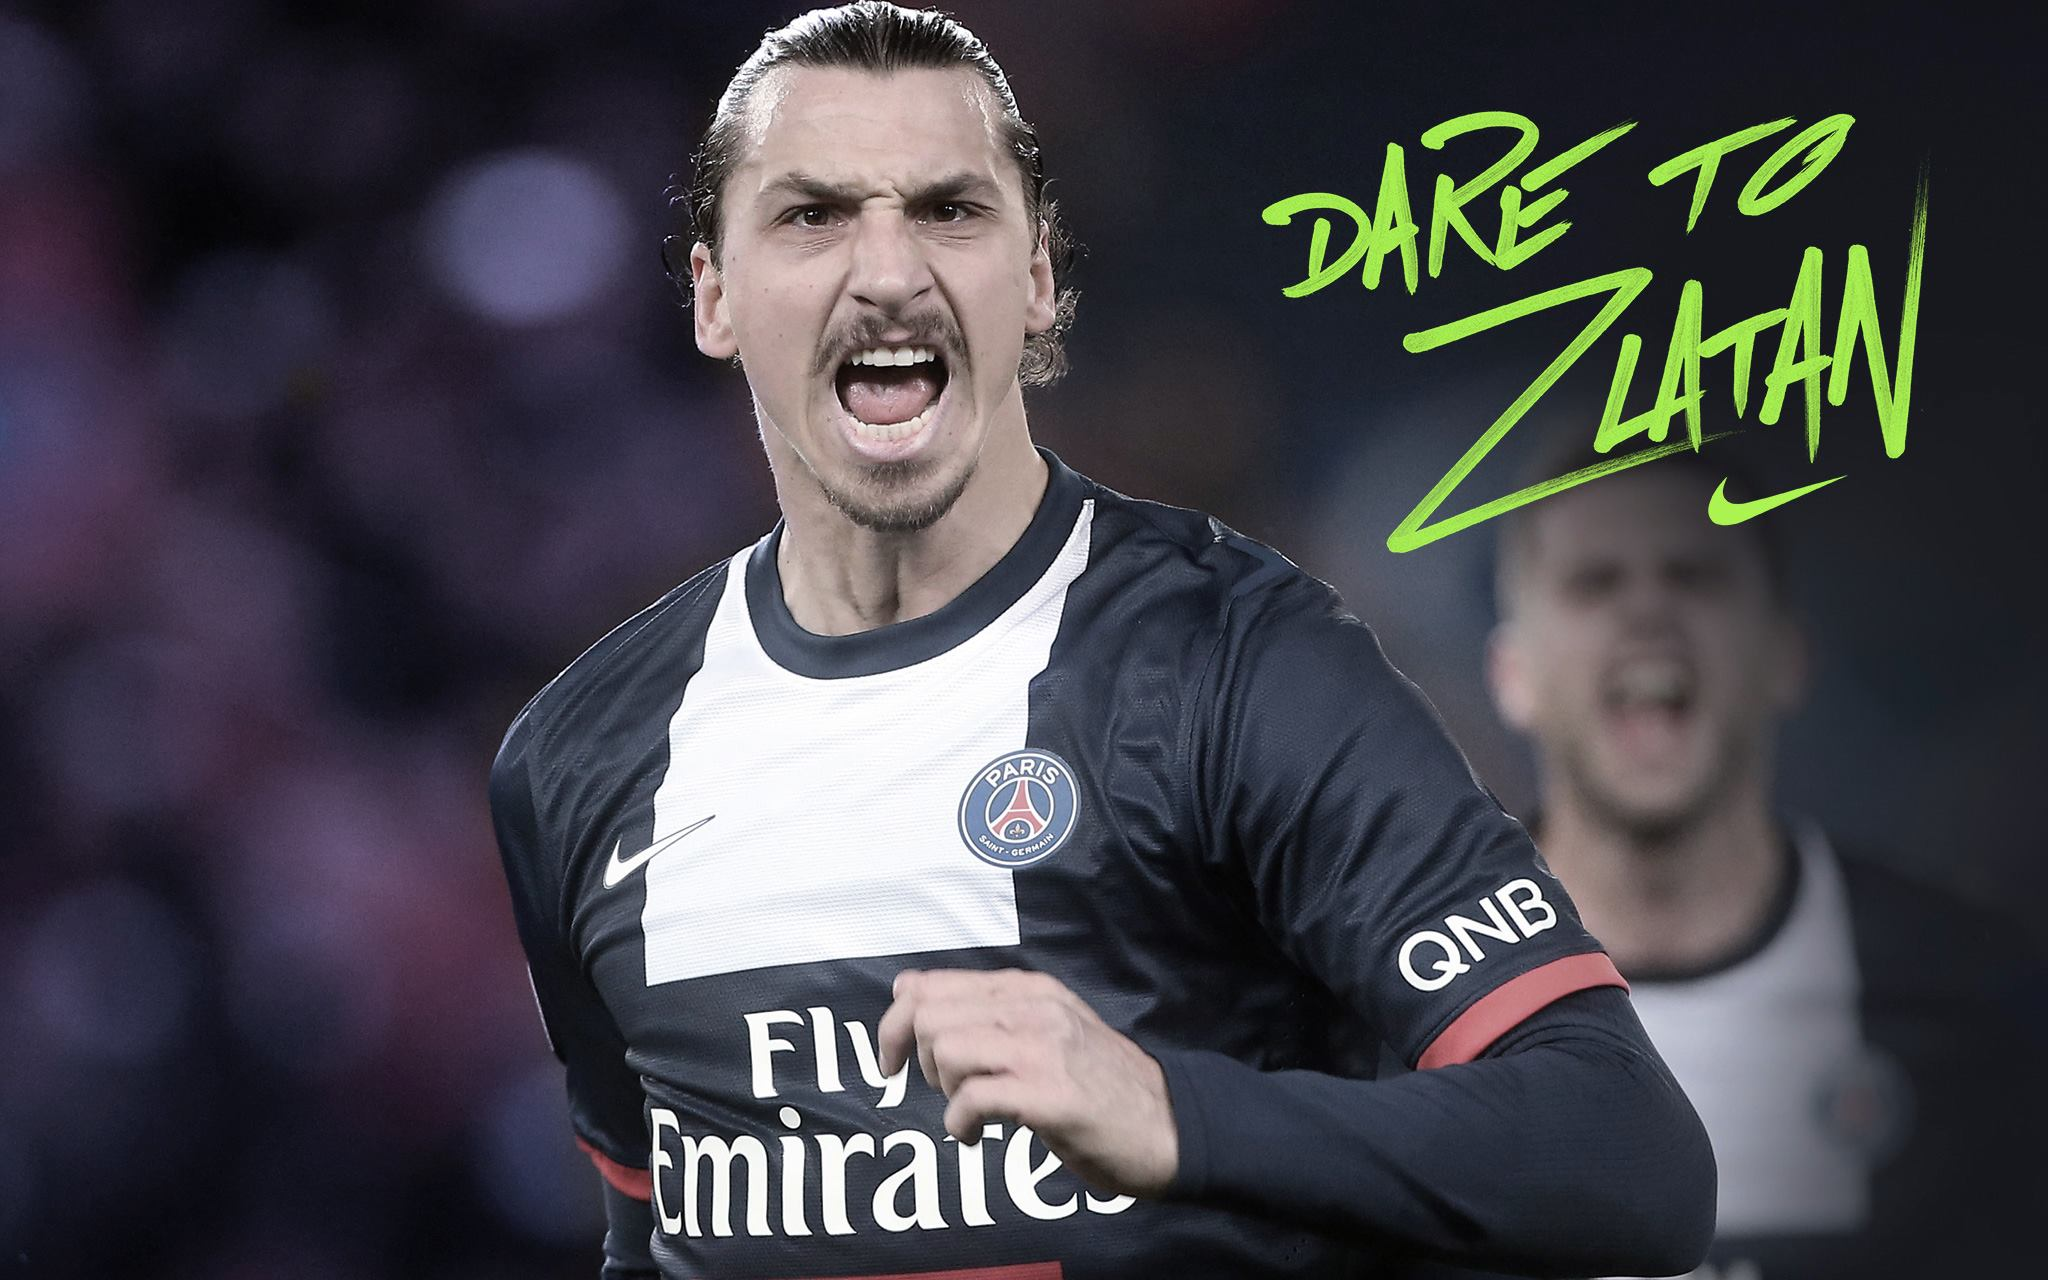 Zlatan Ibrahimovic and Nike have teamed up to create a remarkable new